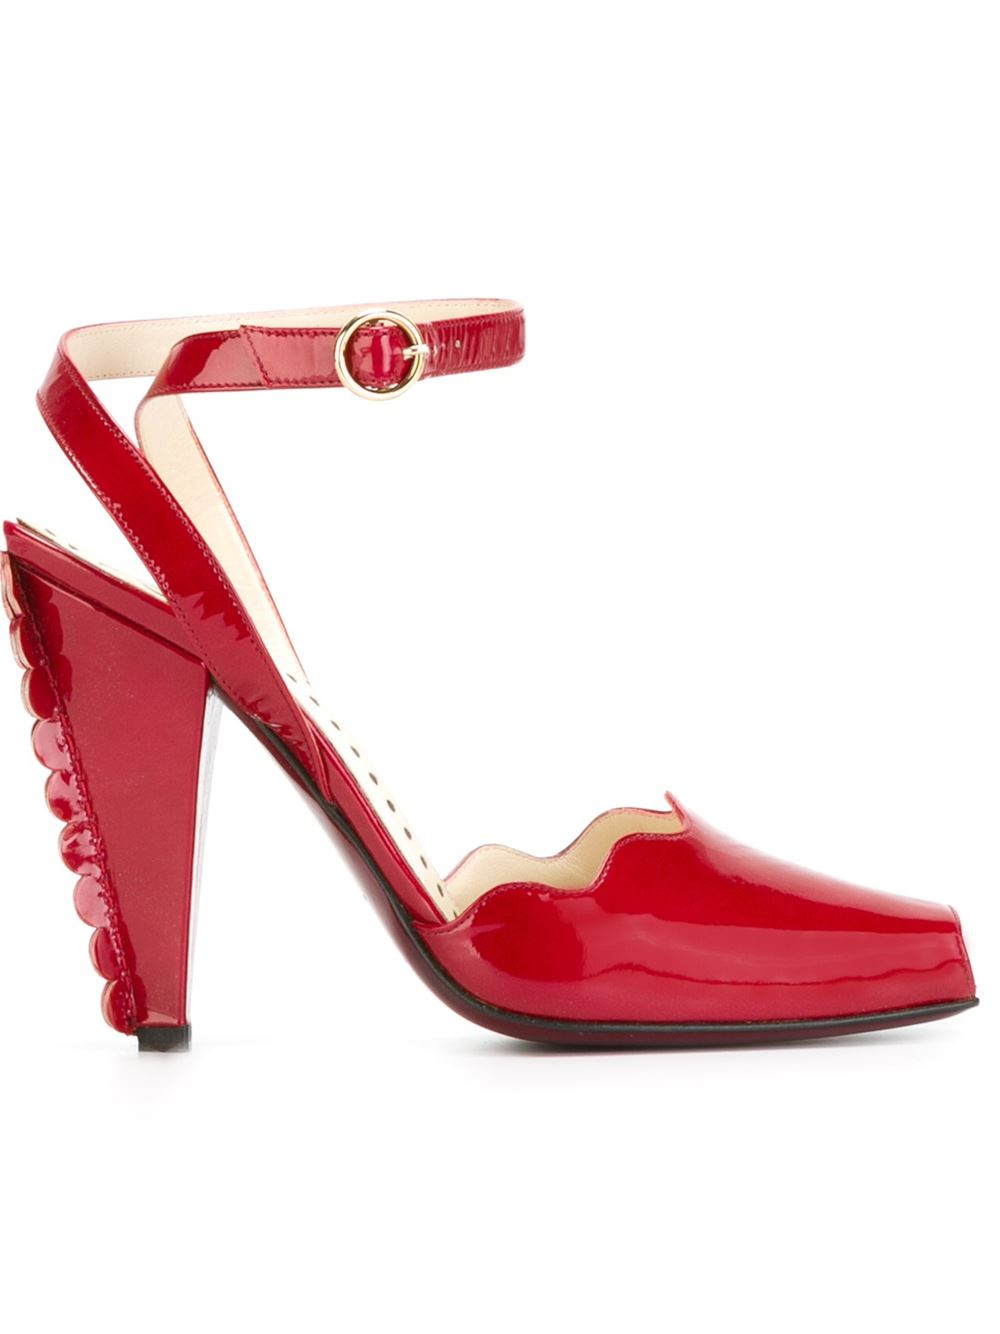 Yves Saint Laurent Vintage scalloped trim heel sandals, FarFetch.com